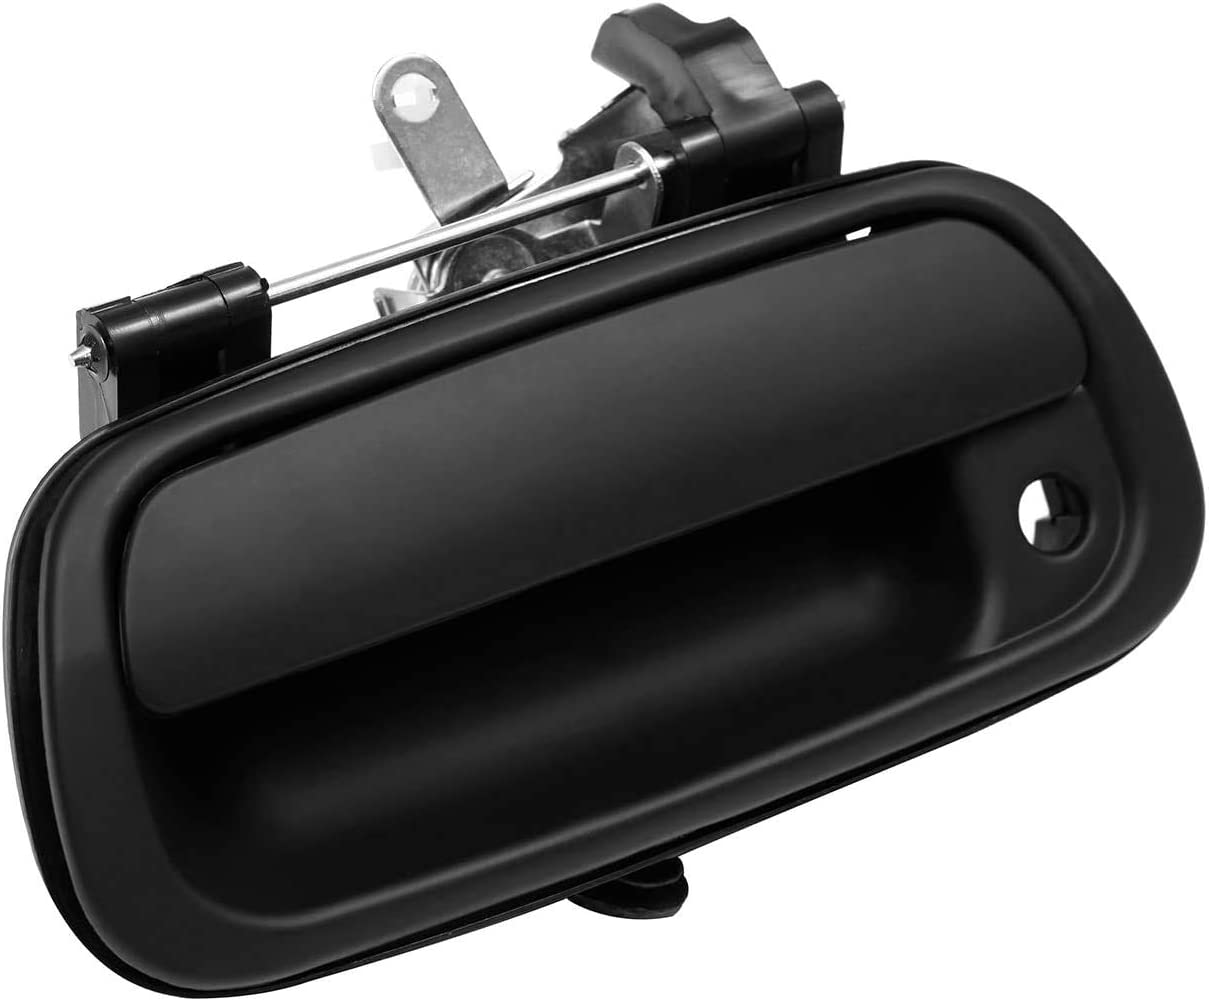 69090-0C010 690900C010 ADP Compatible with Tailgate Handle Latch with Keyhole Toyota Tundra 2000-2006 Rear Exterior Textured Black Tailgate Liftgate Door Latch Replaces